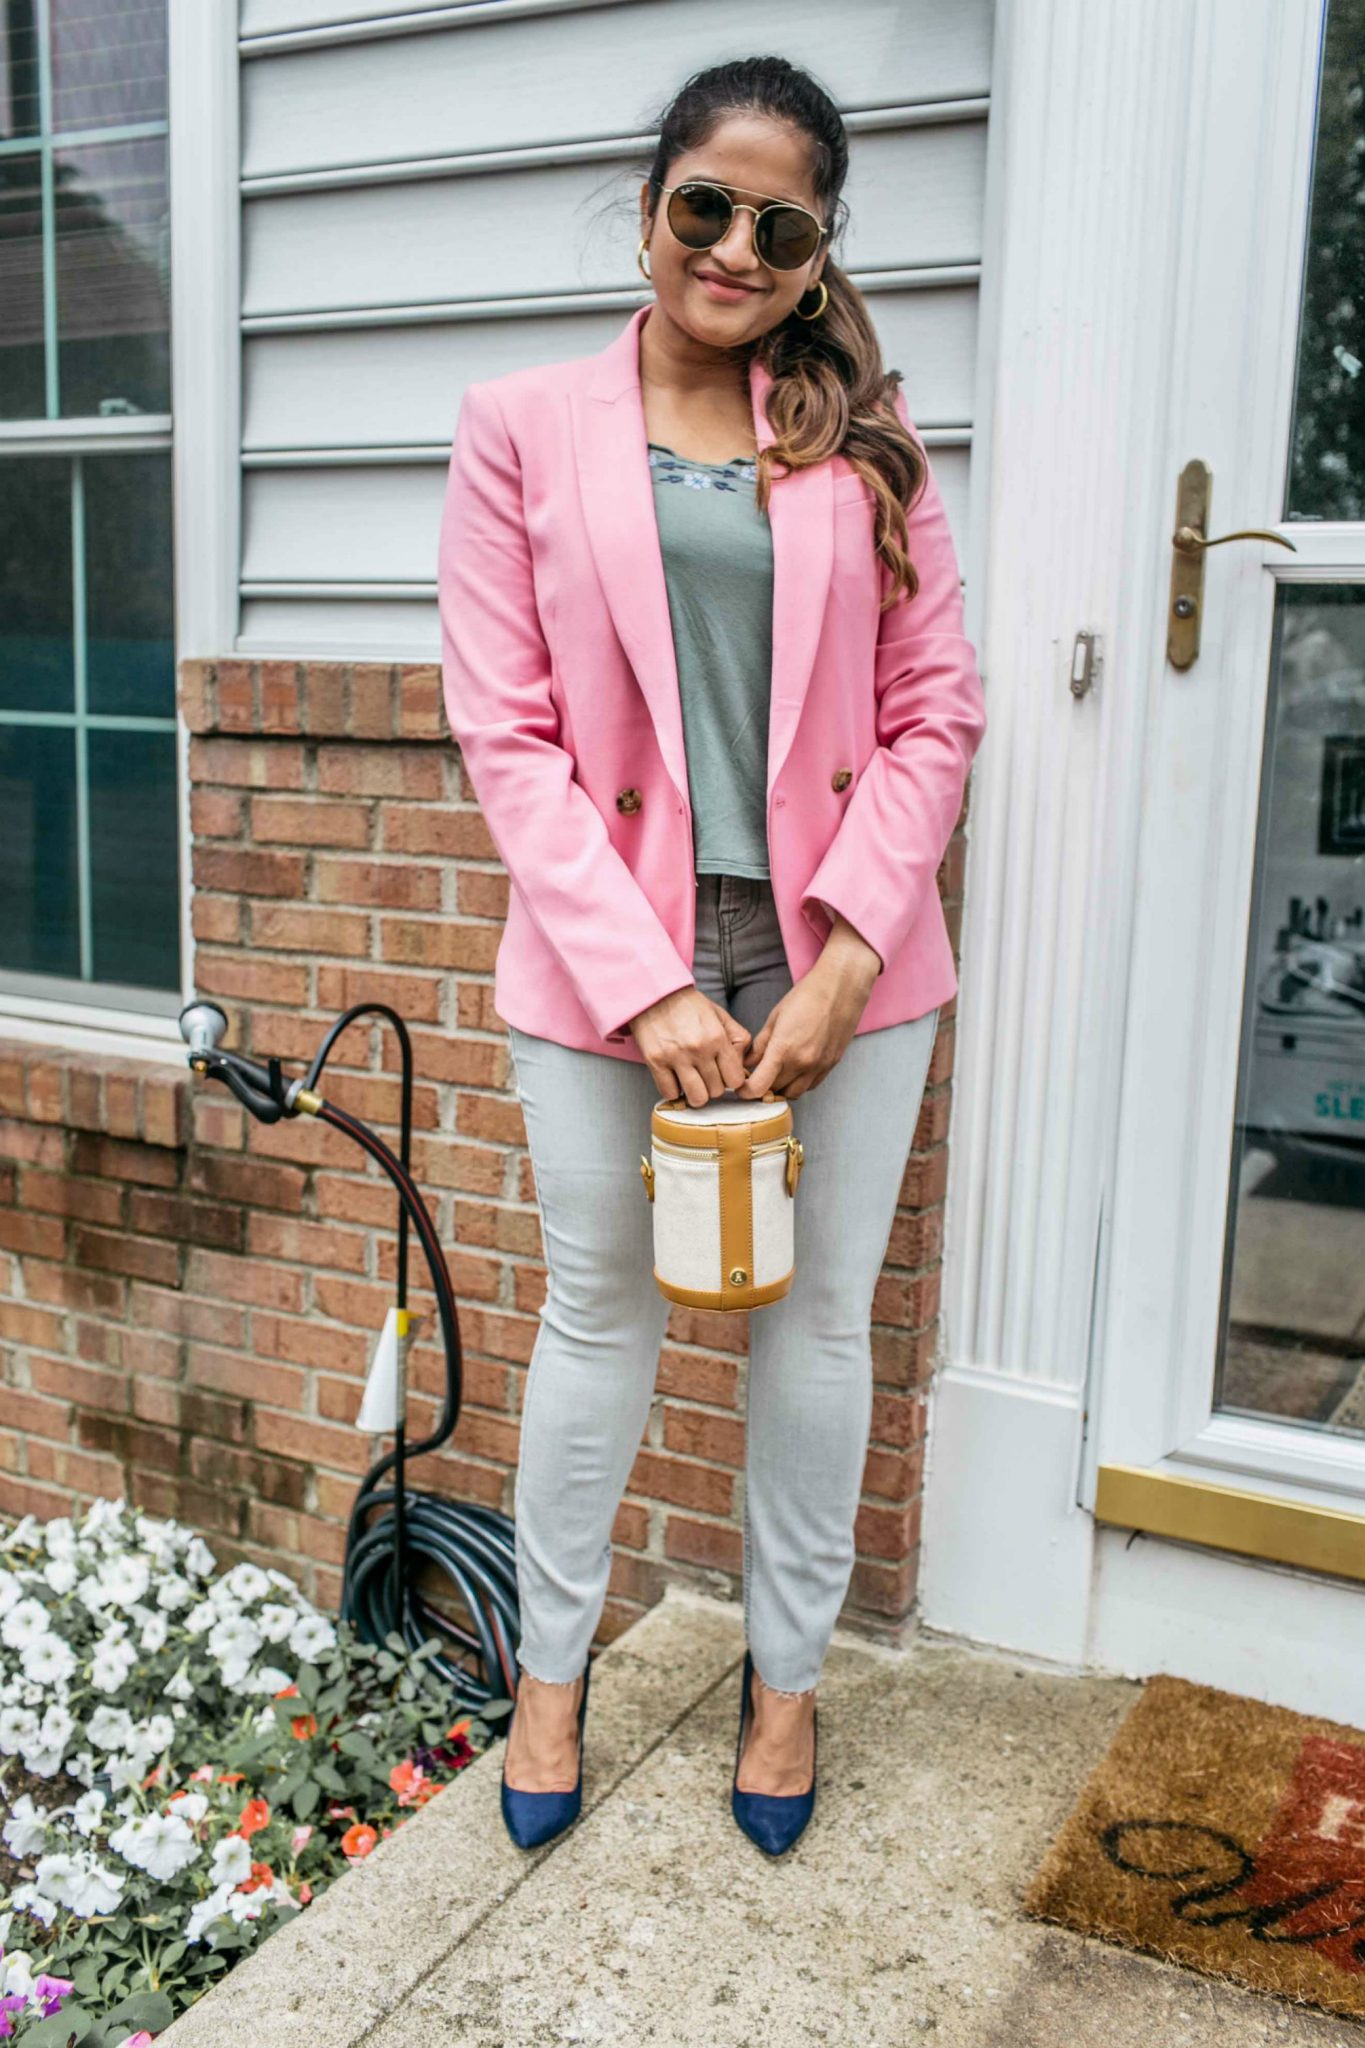 wearing J.Crew Dover Blazer in pink - Nordstrom Anniversary Sale top picks featured by popular Ohio modest fashion blogger, Dreaming Loud